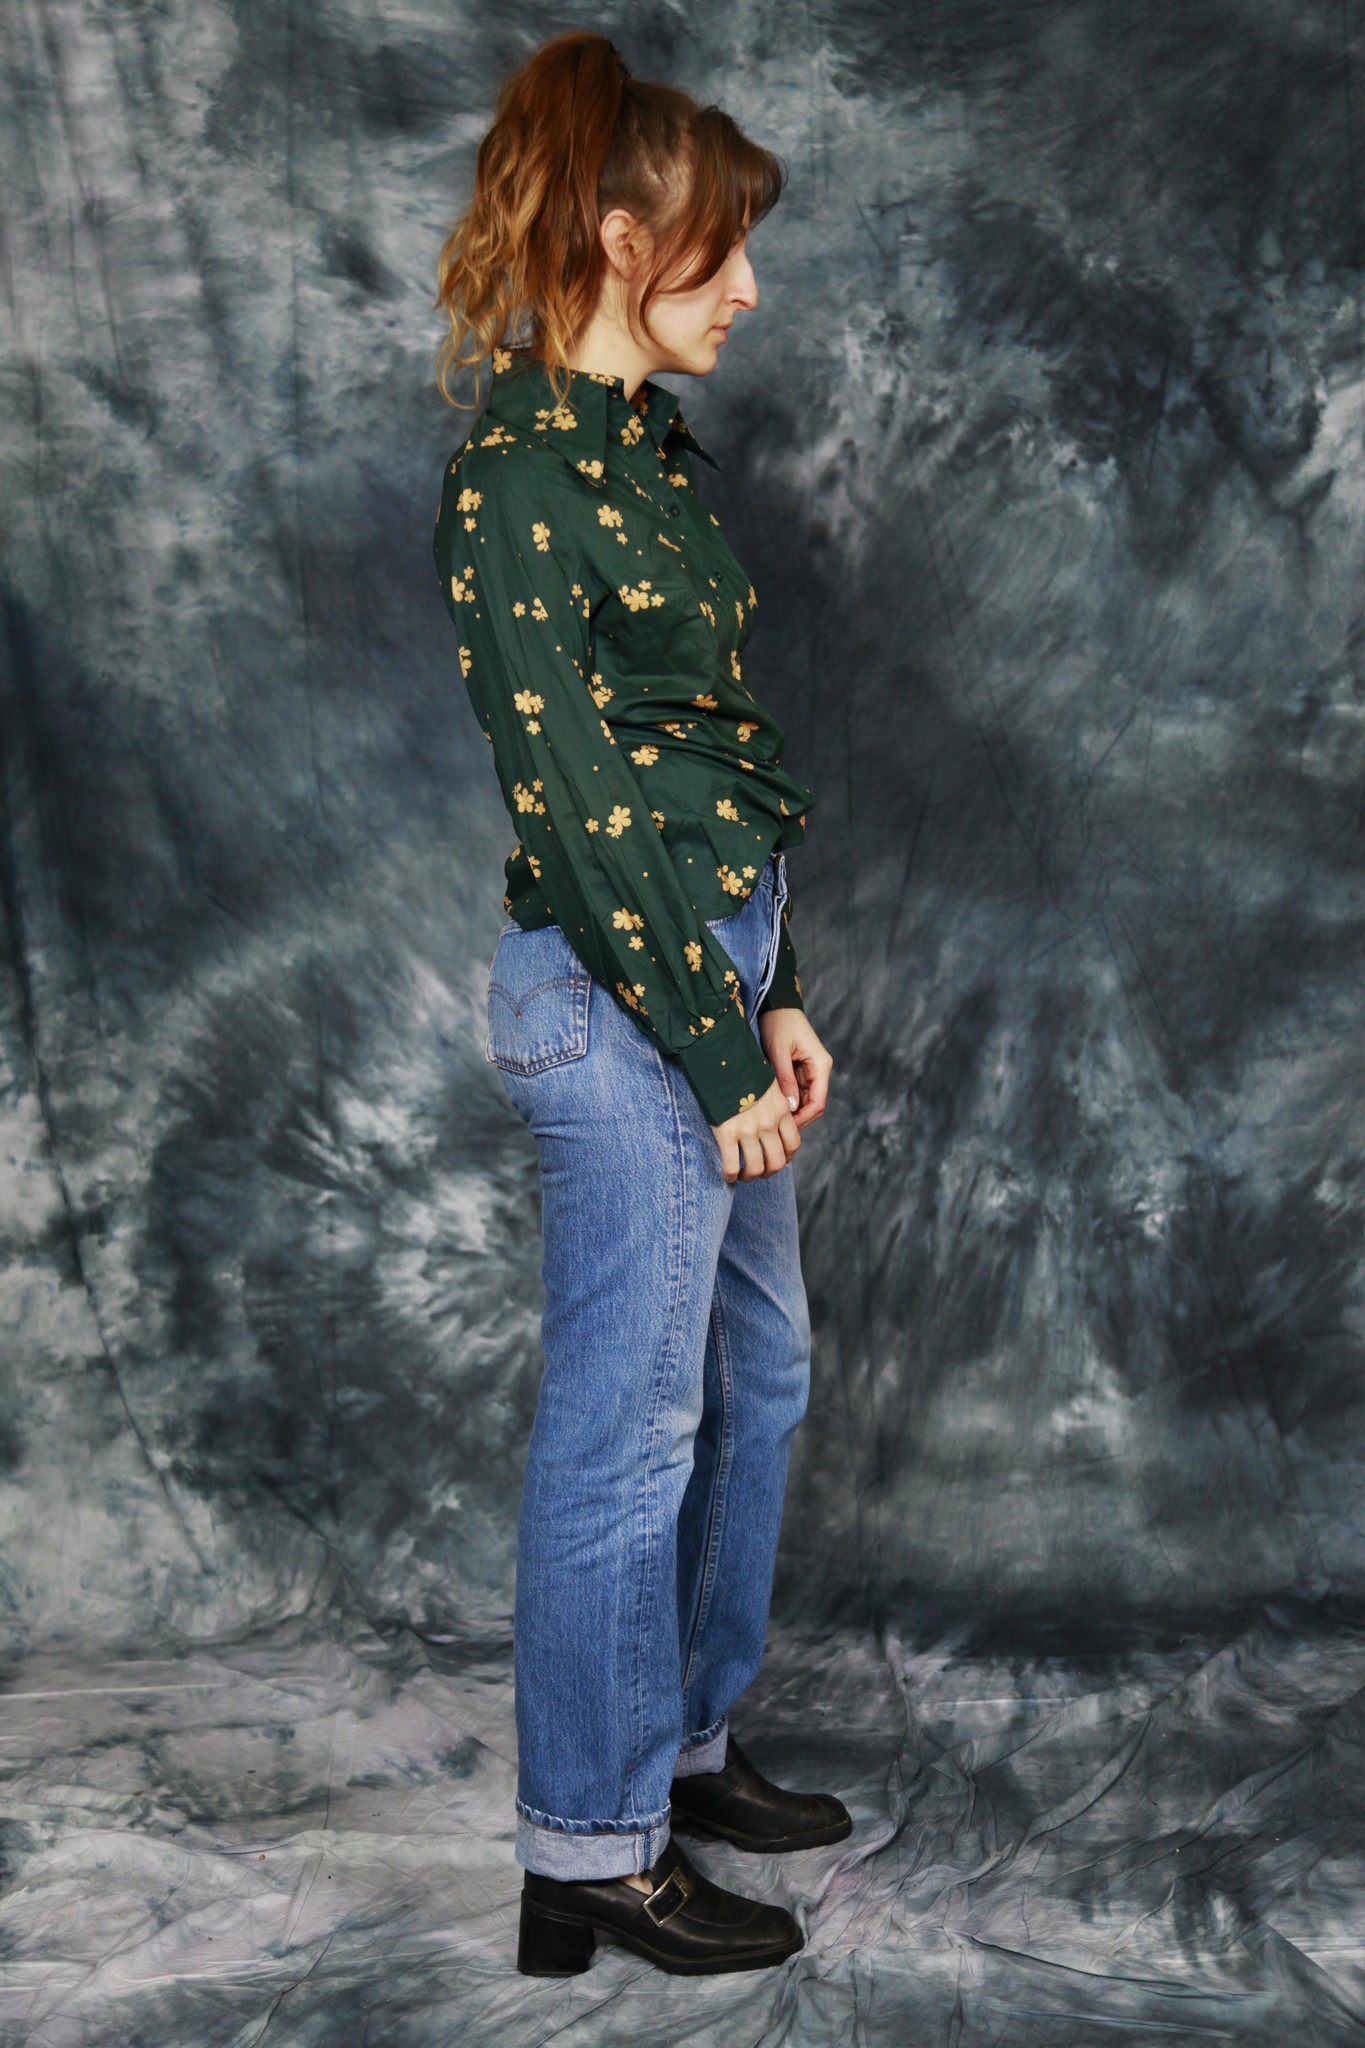 Green 70s blouse